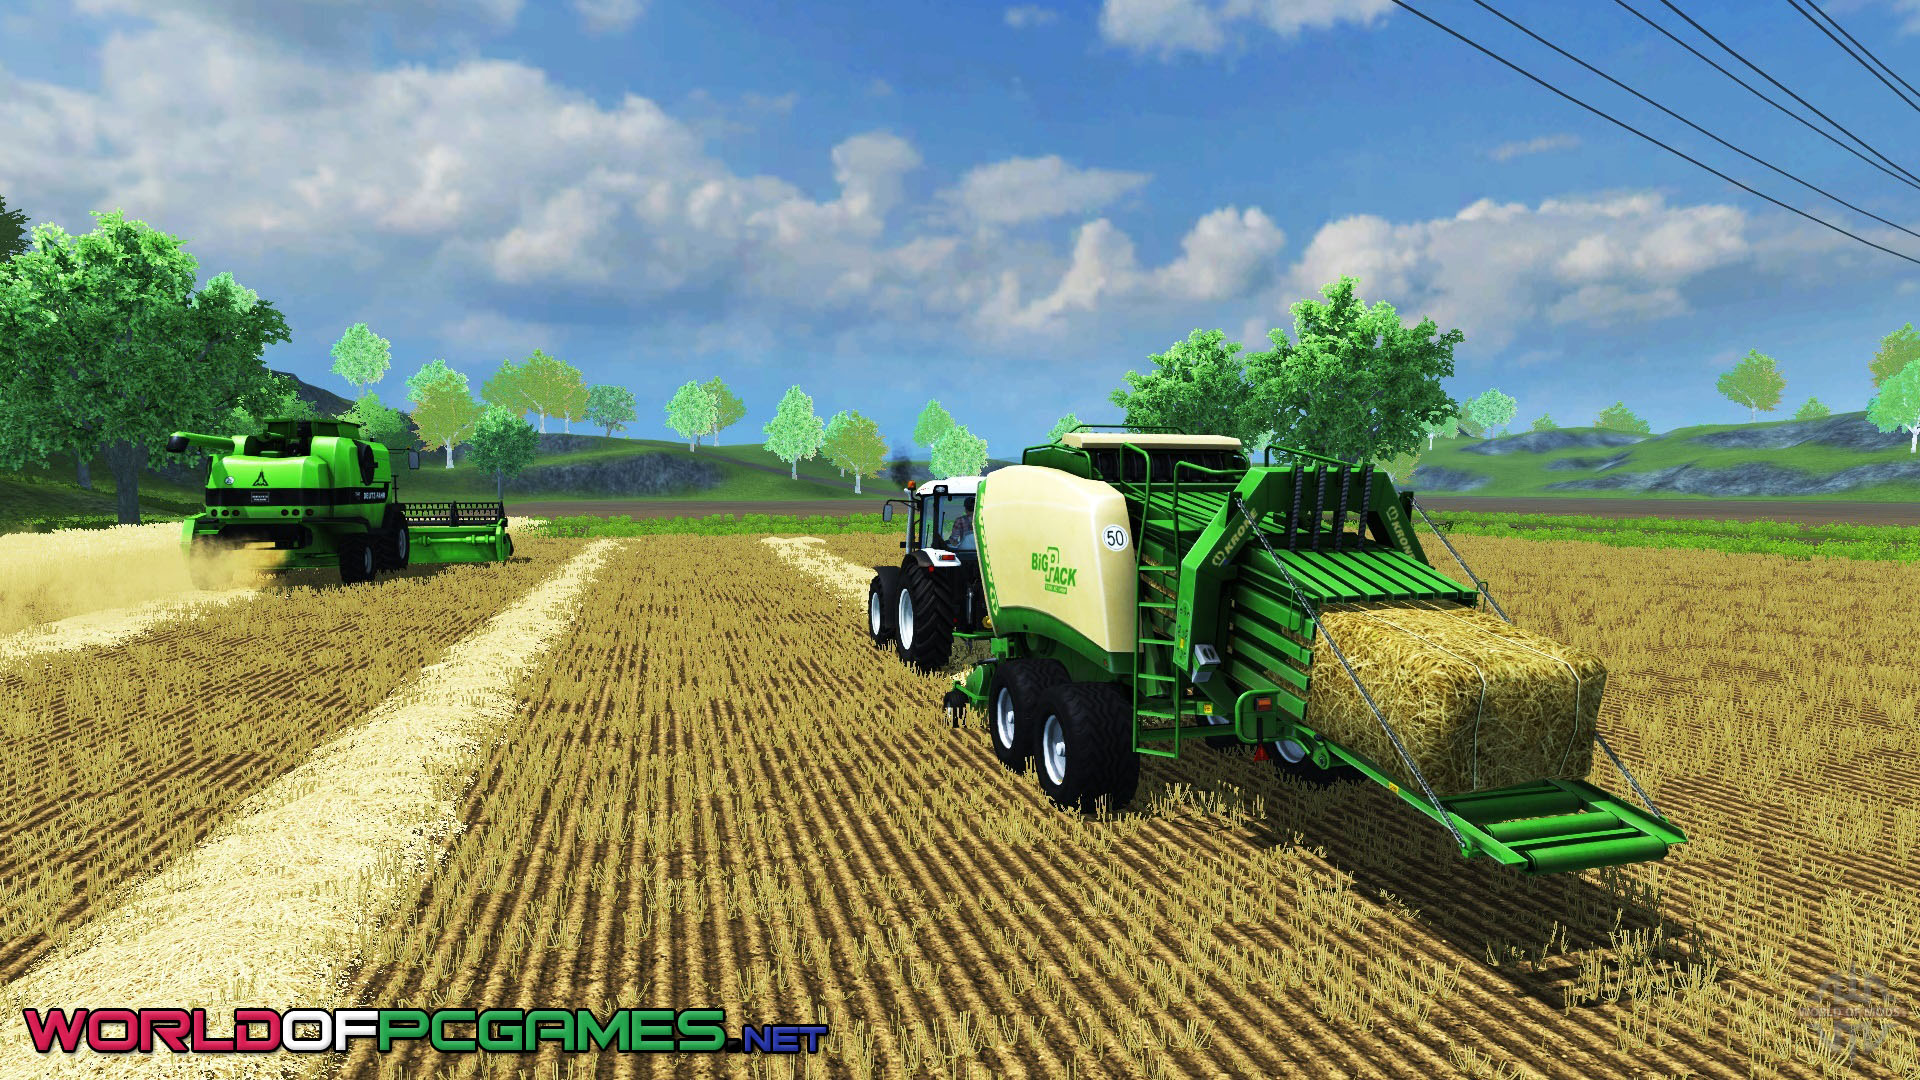 Farming Simulator 2017 Free Download By Worldofpcgames.net 4 - Farming Simulator 17 Download Free